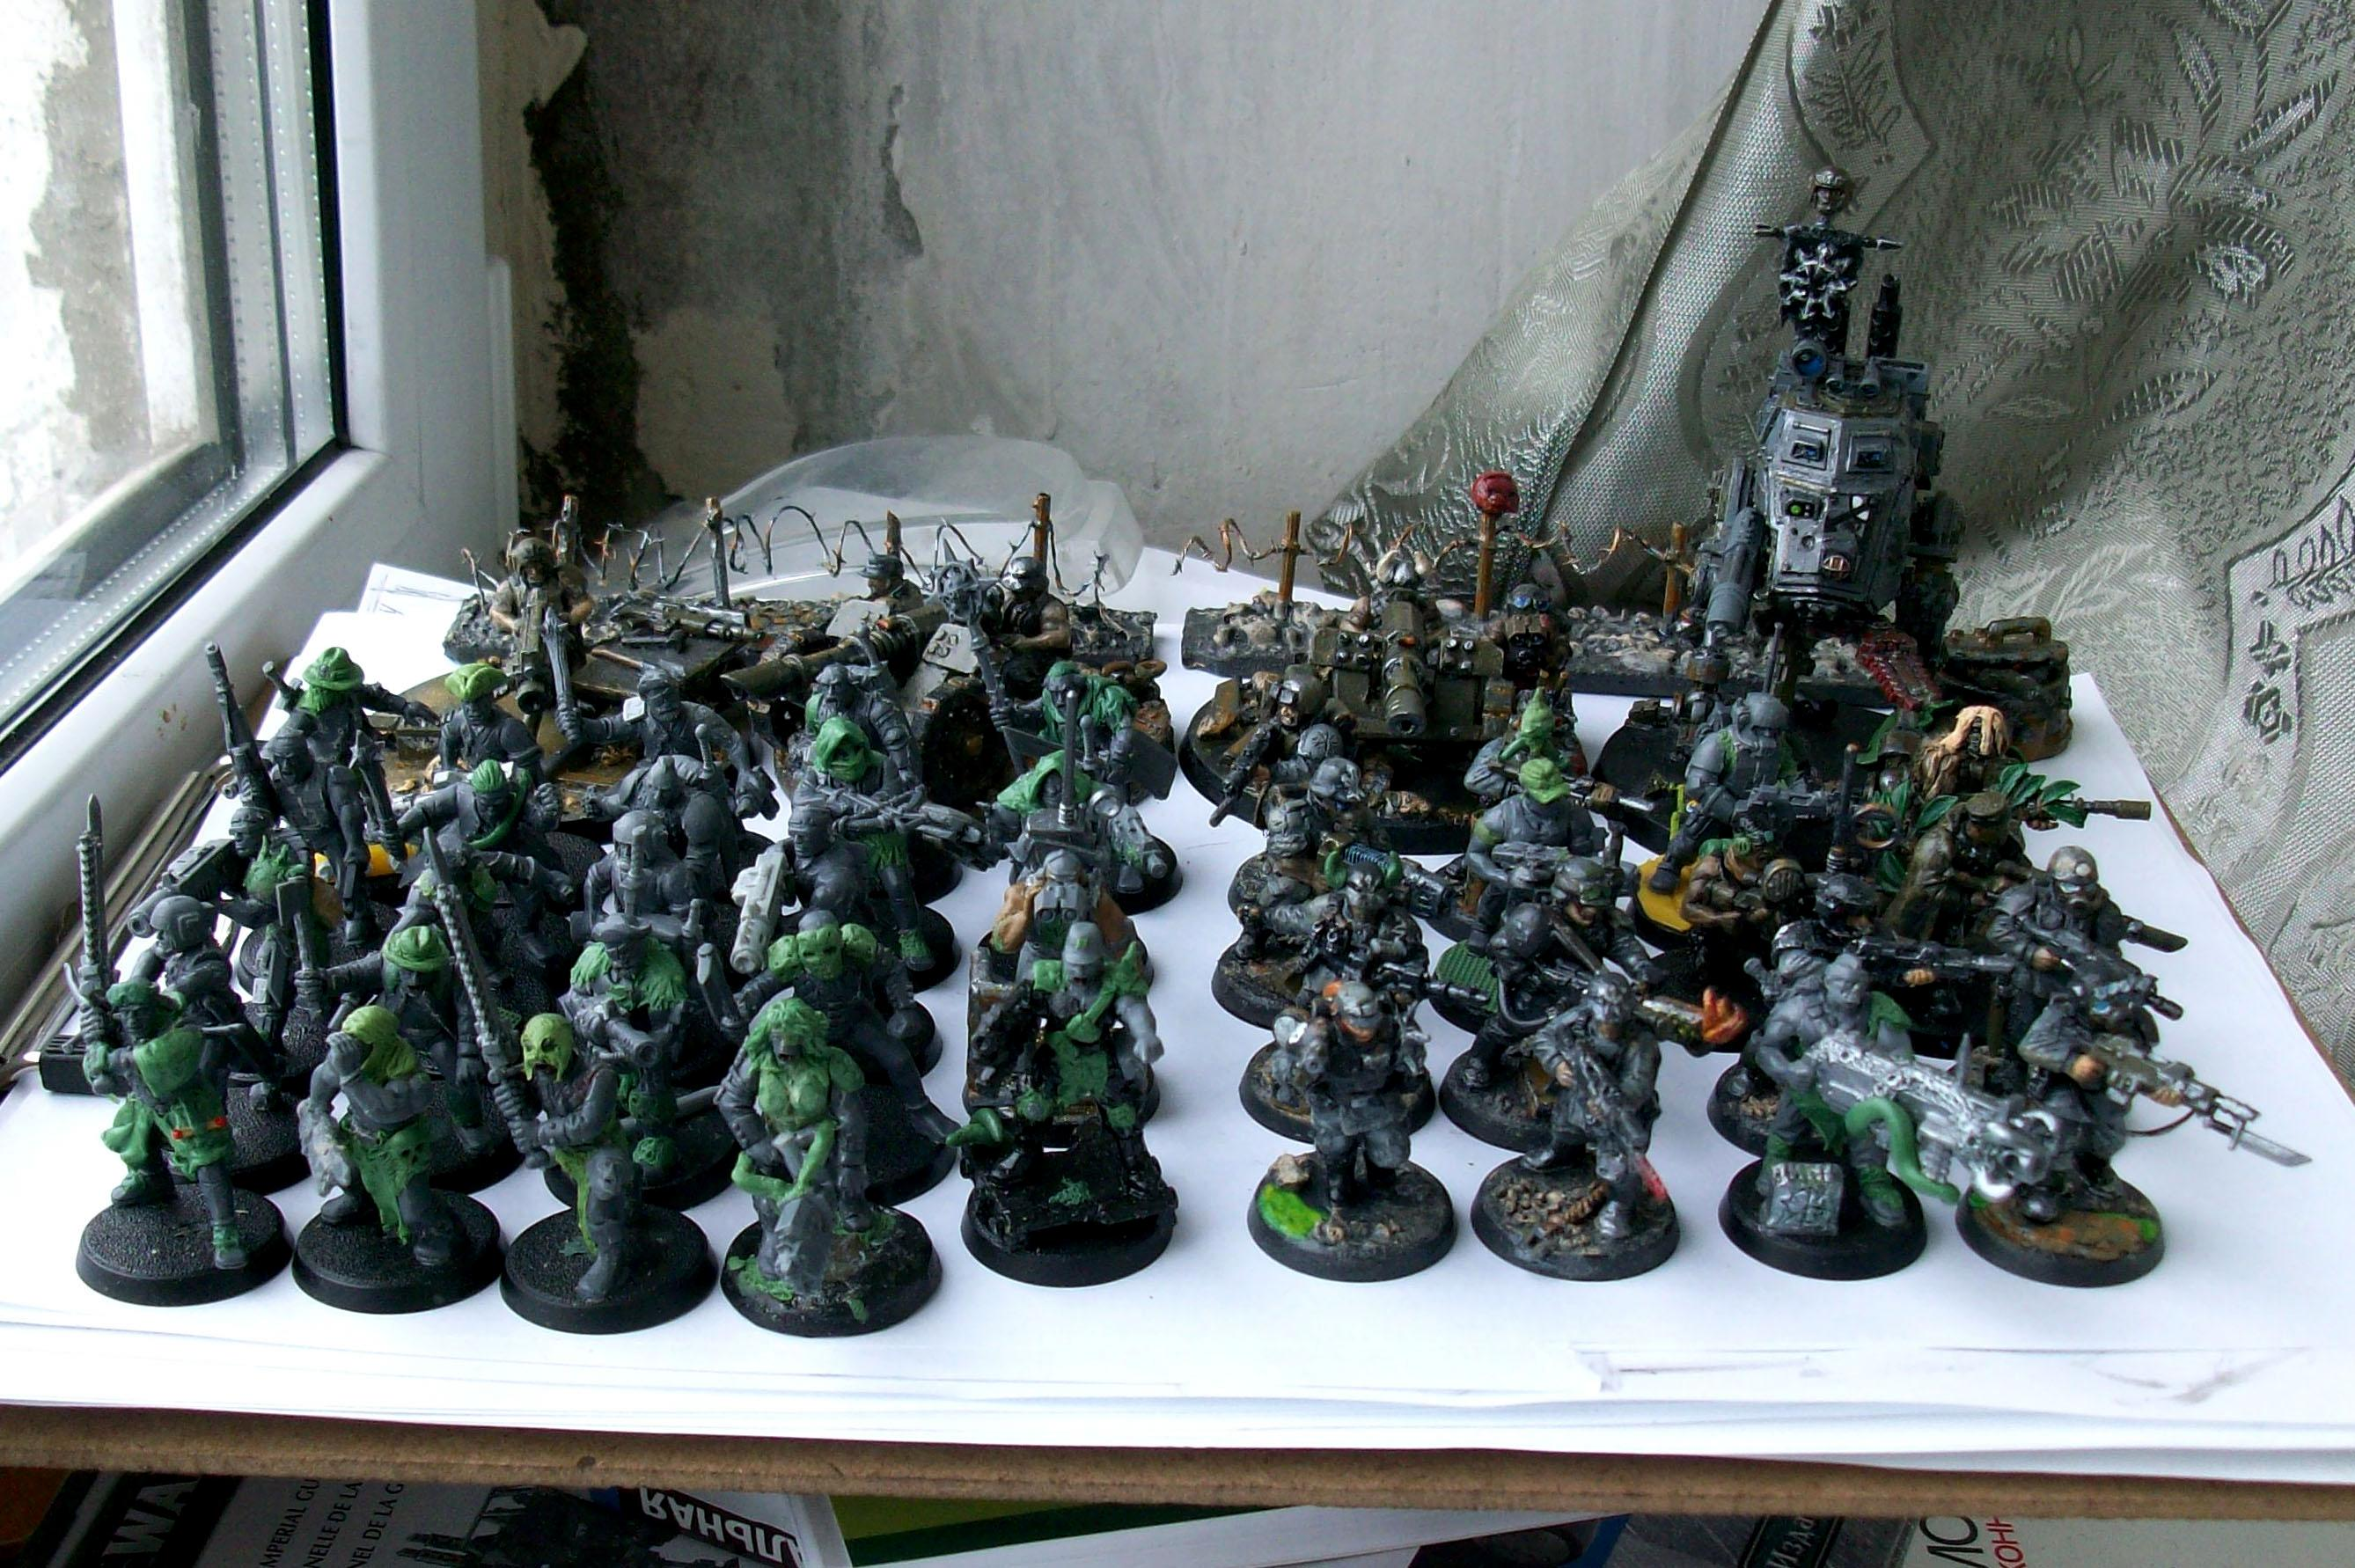 Heretic, Heretics, Imperial Guard, Lost And The Damned, Renegades, Traitor, Traitors